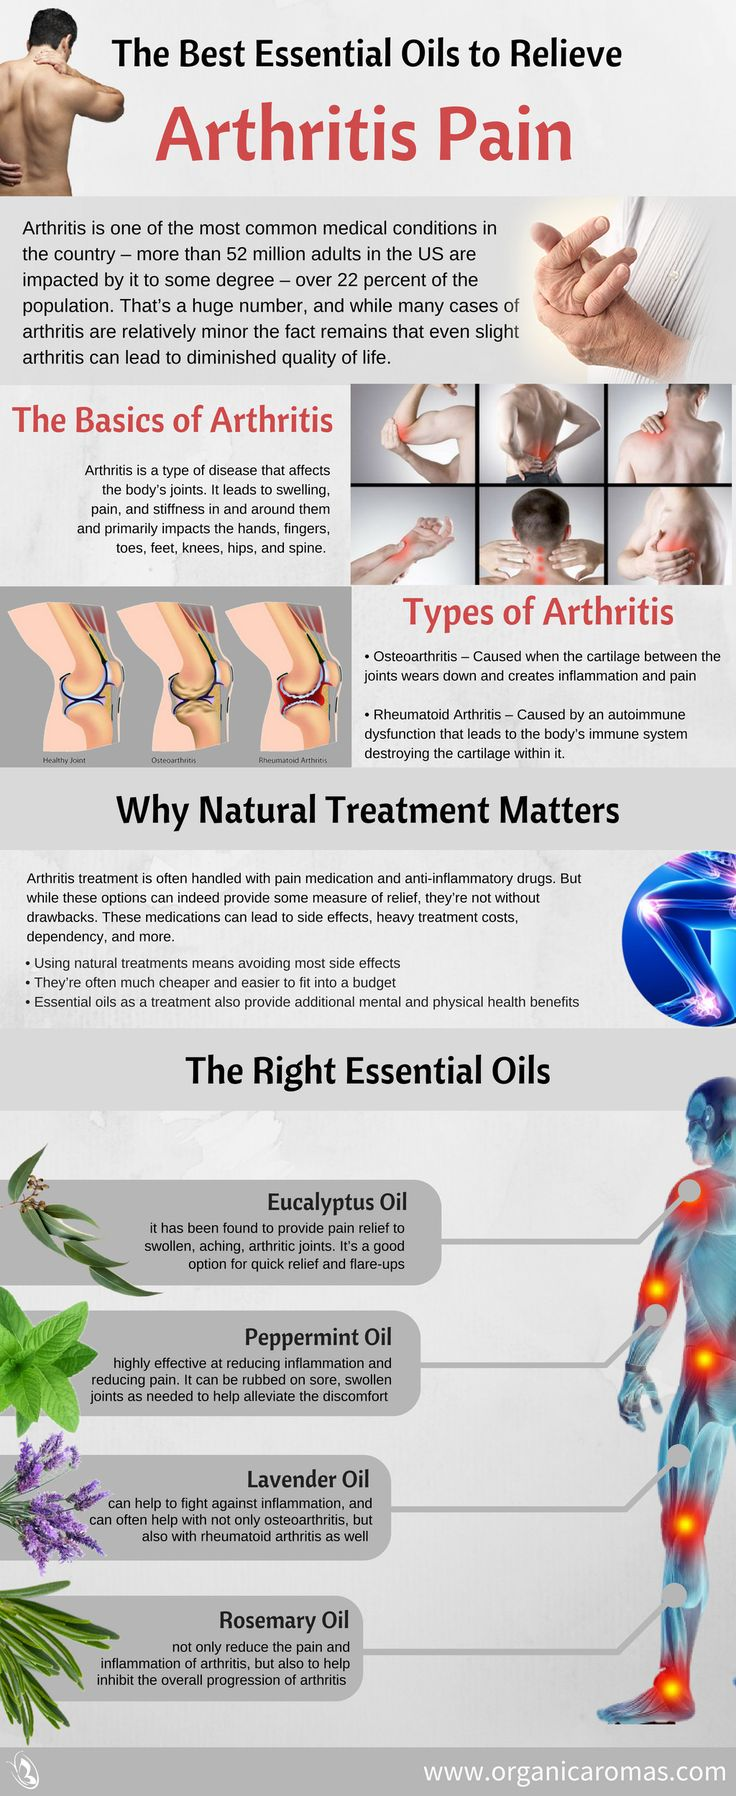 The Best Essential Oils to Relieve Arthritis Pain - #OrganicAromas #EssentialOils Arthritis is a type of disease that affects the body's joints. It leads to swelling, pain, and stiffness in and around them and primarily impacts the hands, fingers, toes, feet, knees, hips, and spine